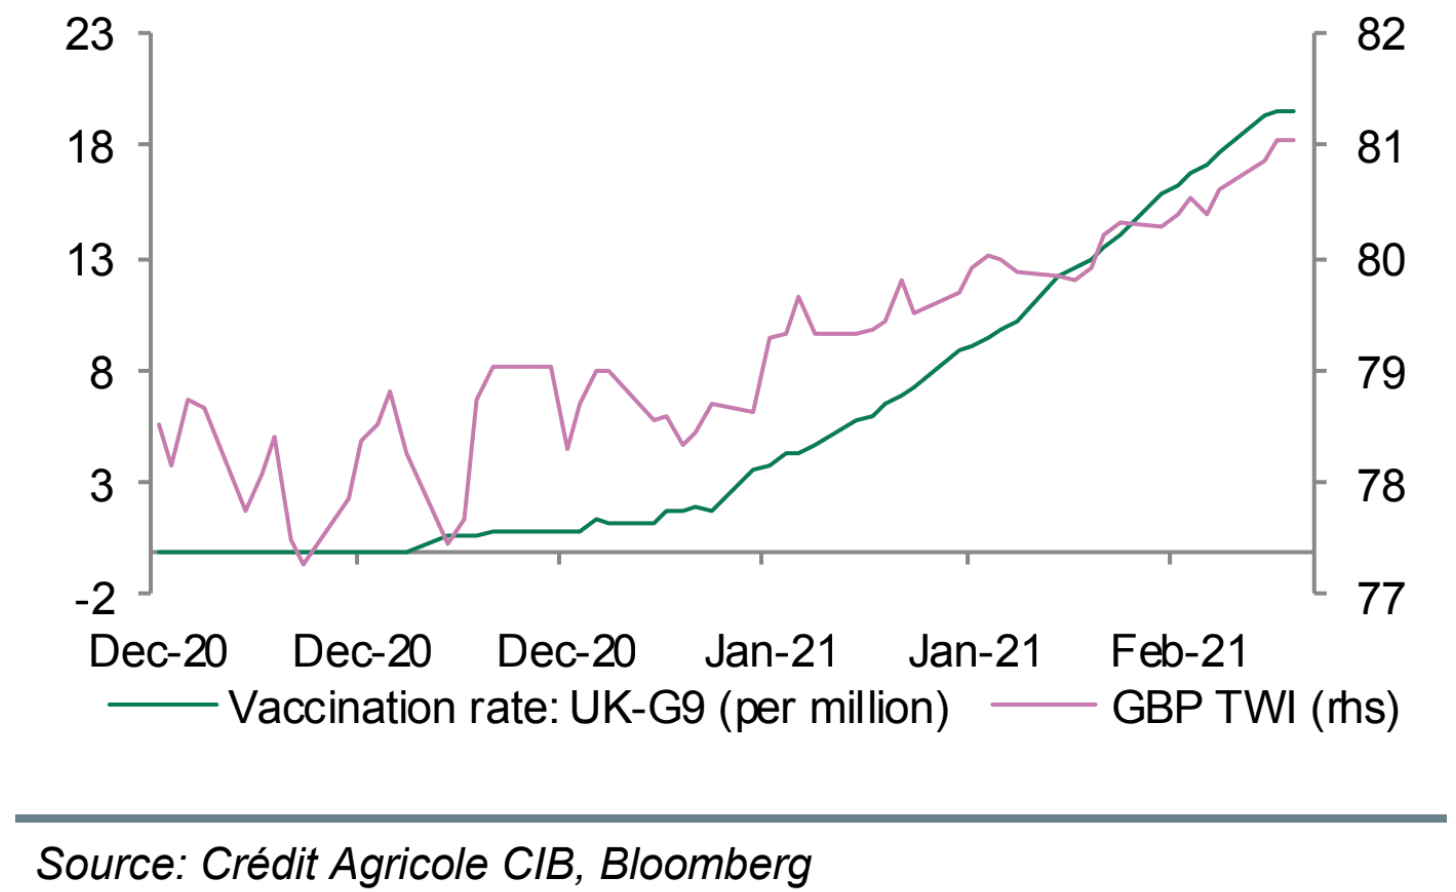 Pound performance related to vaccine rollout